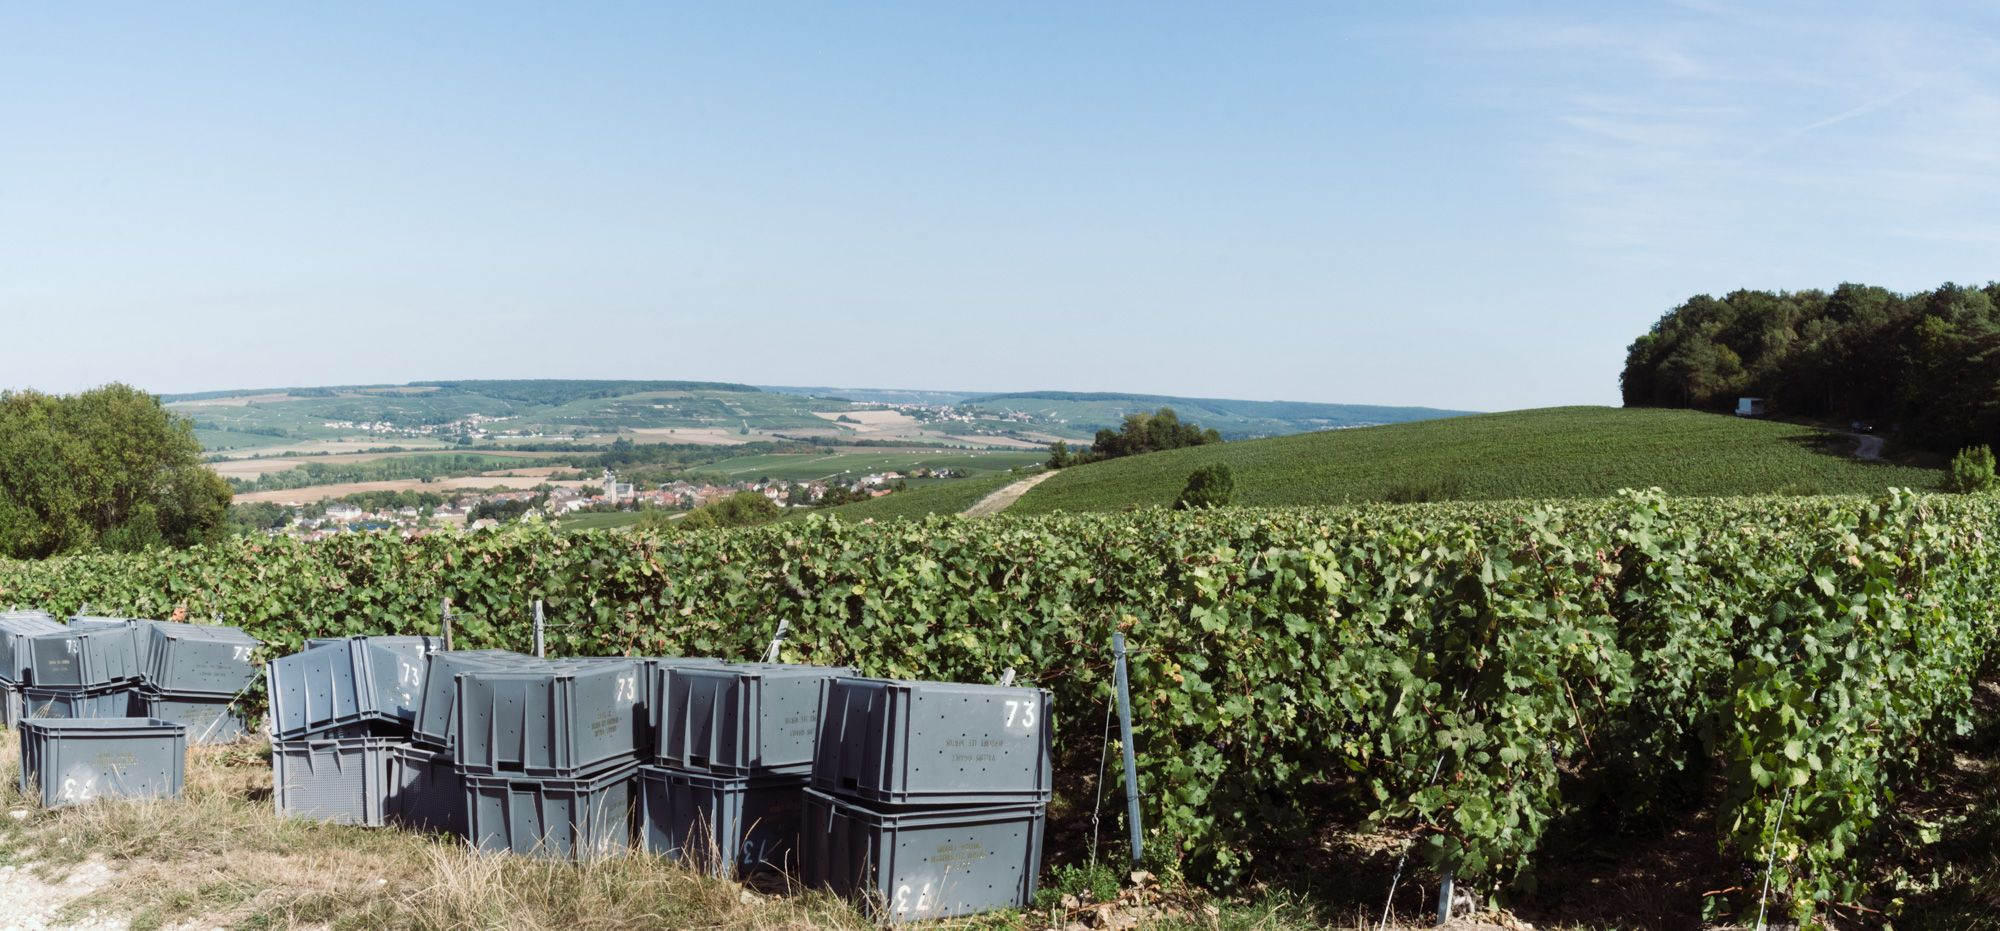 Vendanges 2019 - Vallée de la marne